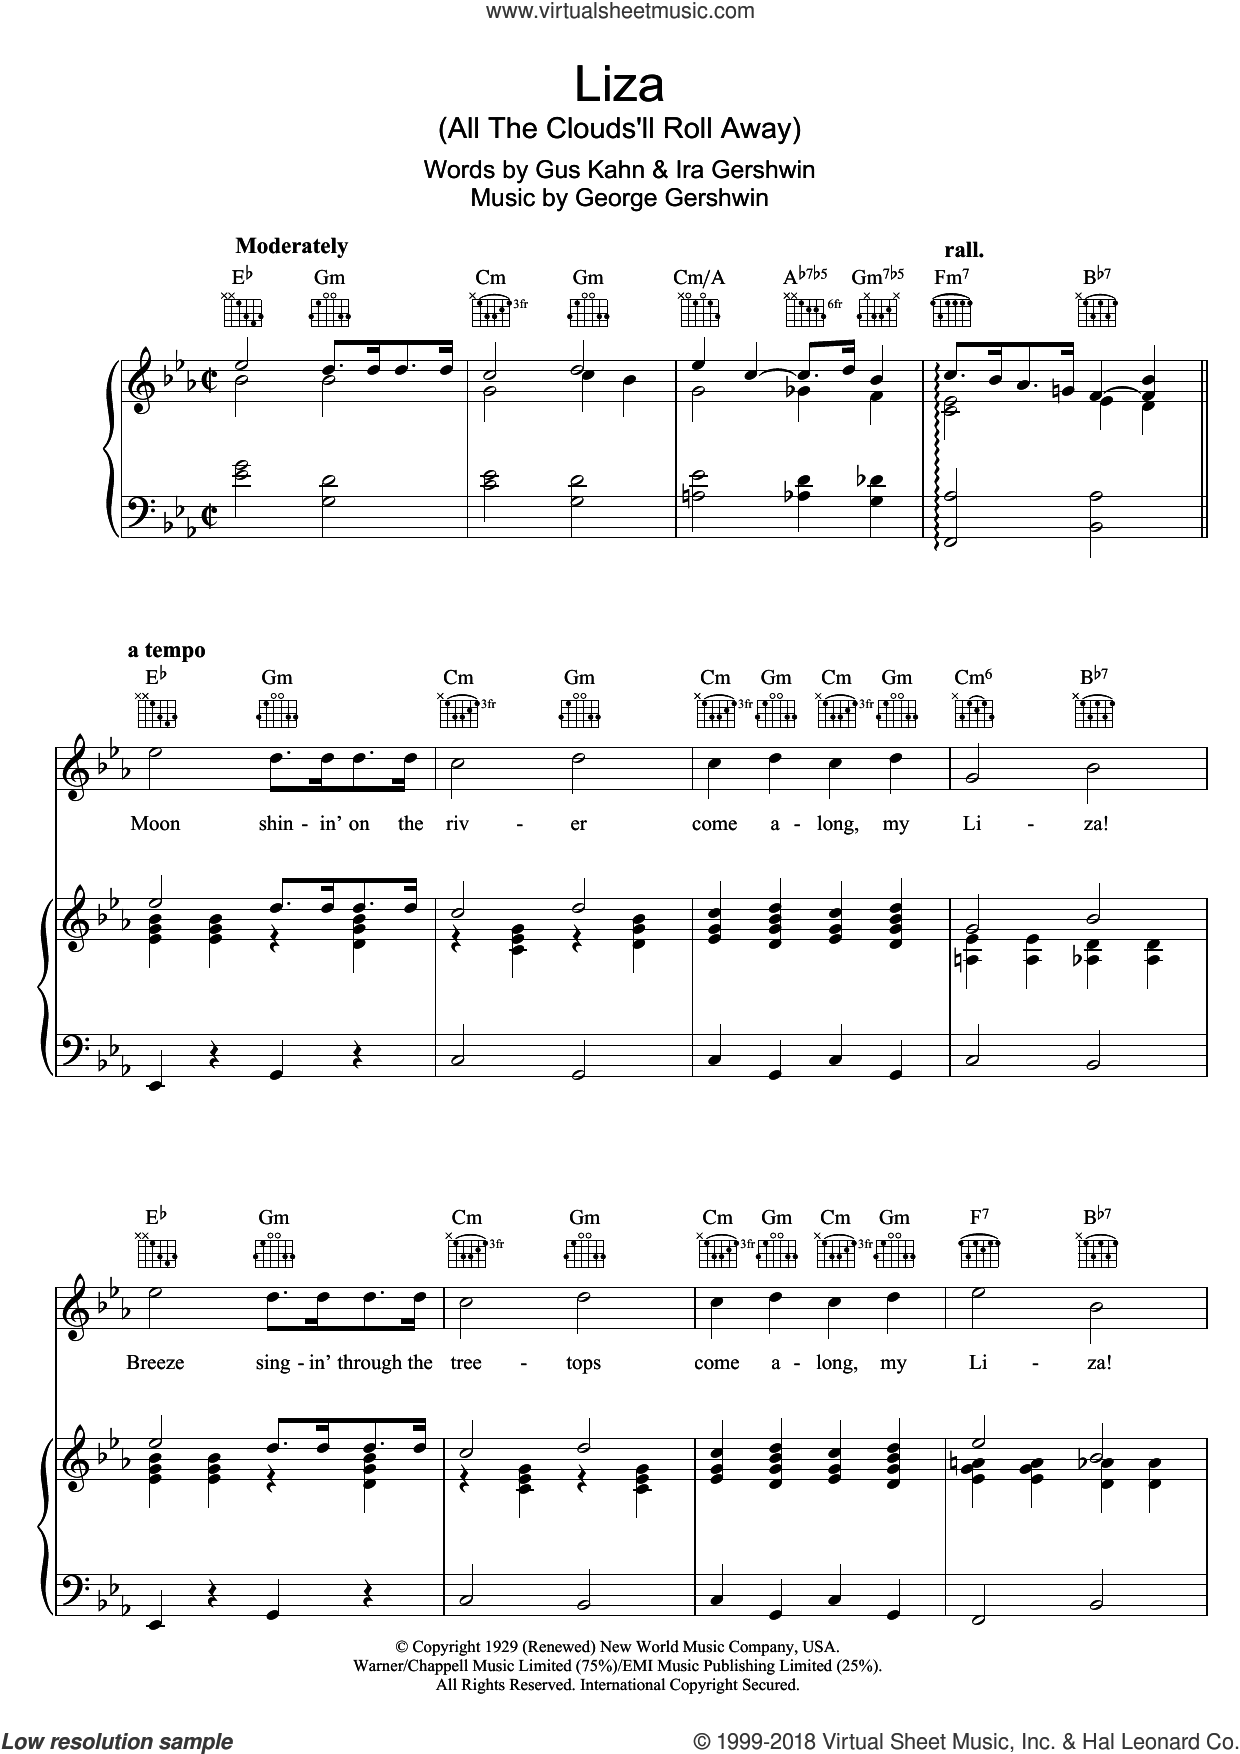 Liza (All The Clouds'll Roll Away) sheet music for voice, piano or guitar by George Gershwin, Gus Kahn and Ira Gershwin, intermediate skill level